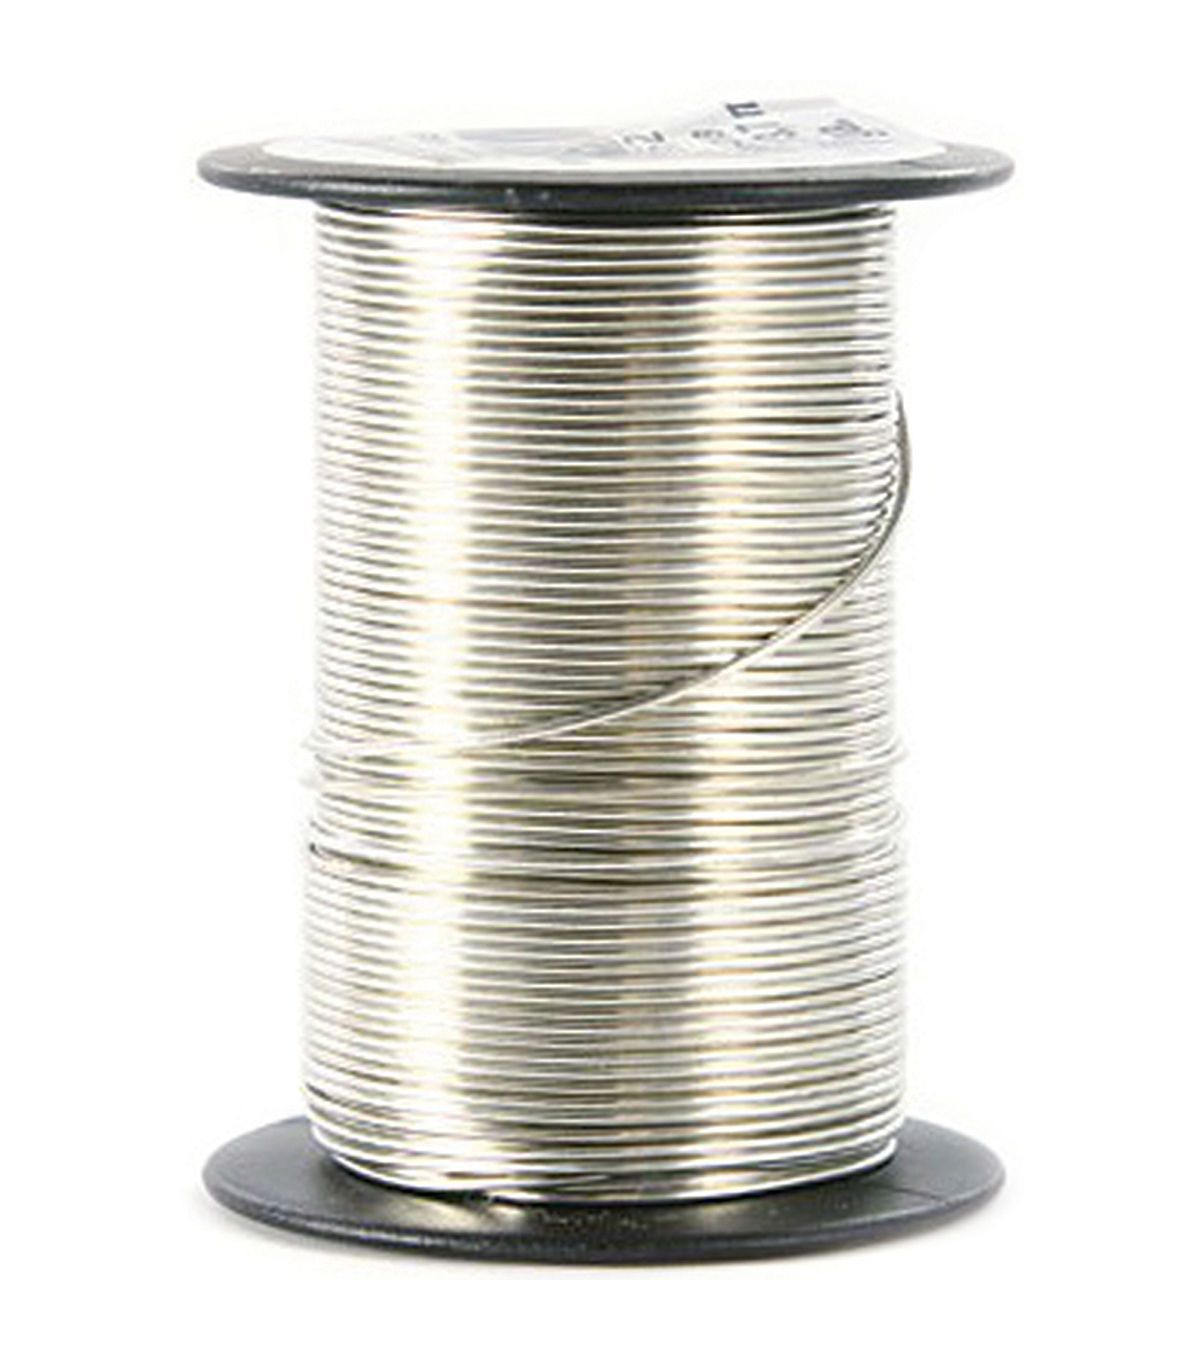 20 Gauge Wire 12 Yards/Pkg - Silver | Gauges, Yards and Products